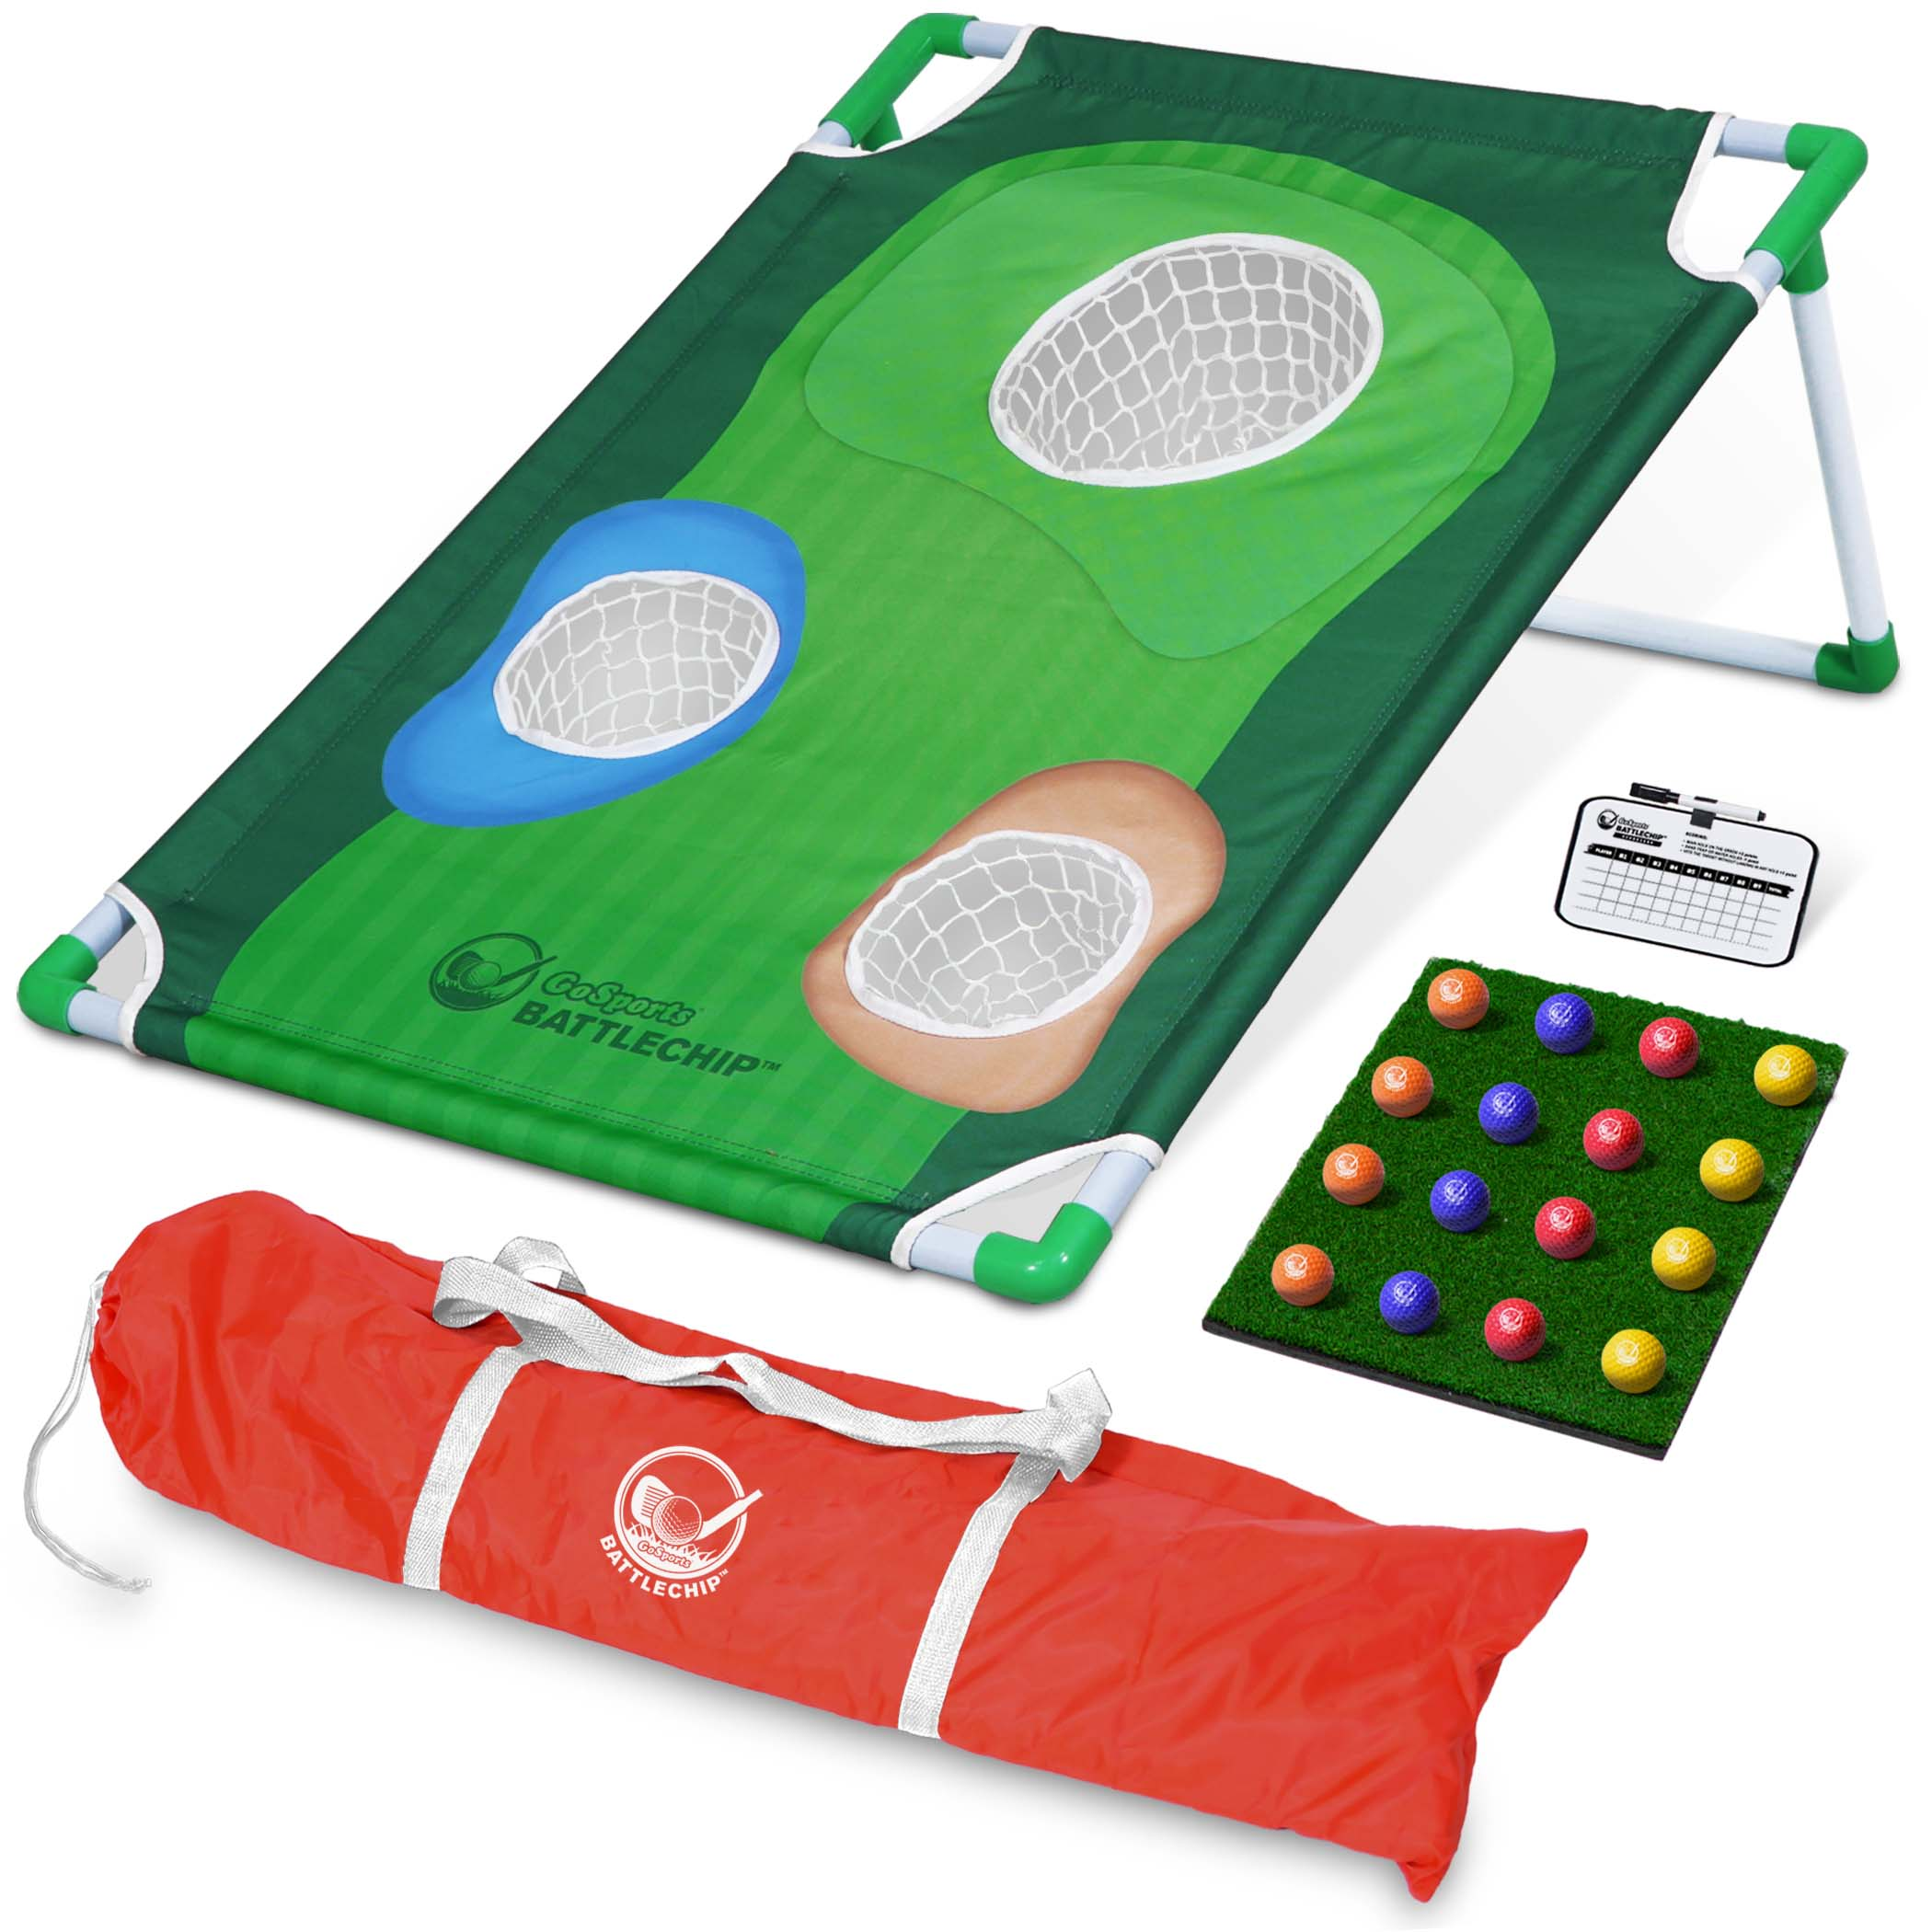 GoSports BattleChip Backyard Golf Cornhole Game | Includes Chipping Target, 16 Foam Balls, Hitting Mat and... by P&P Imports